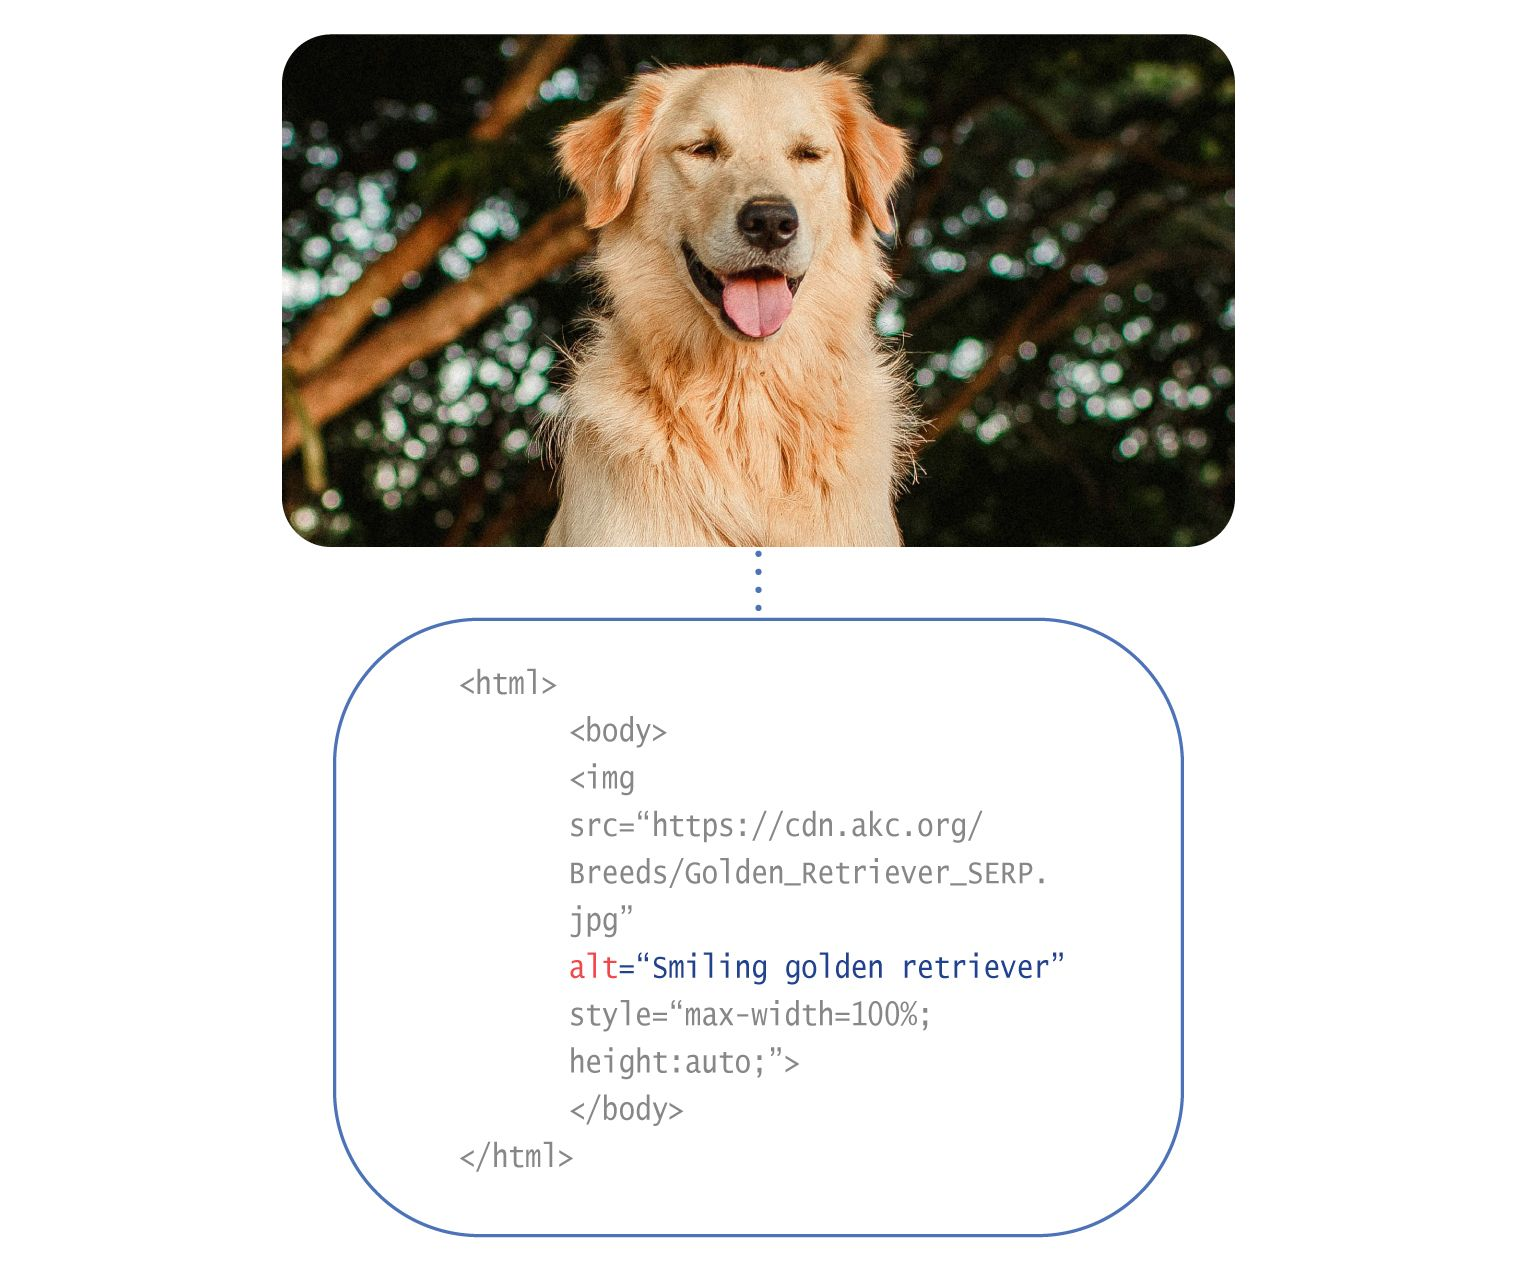 Image: An example of an alt tag in the code of a site. Above is a photo of a happy dog, and below is the code showing the alt tag as 'smiling golden retriever.'